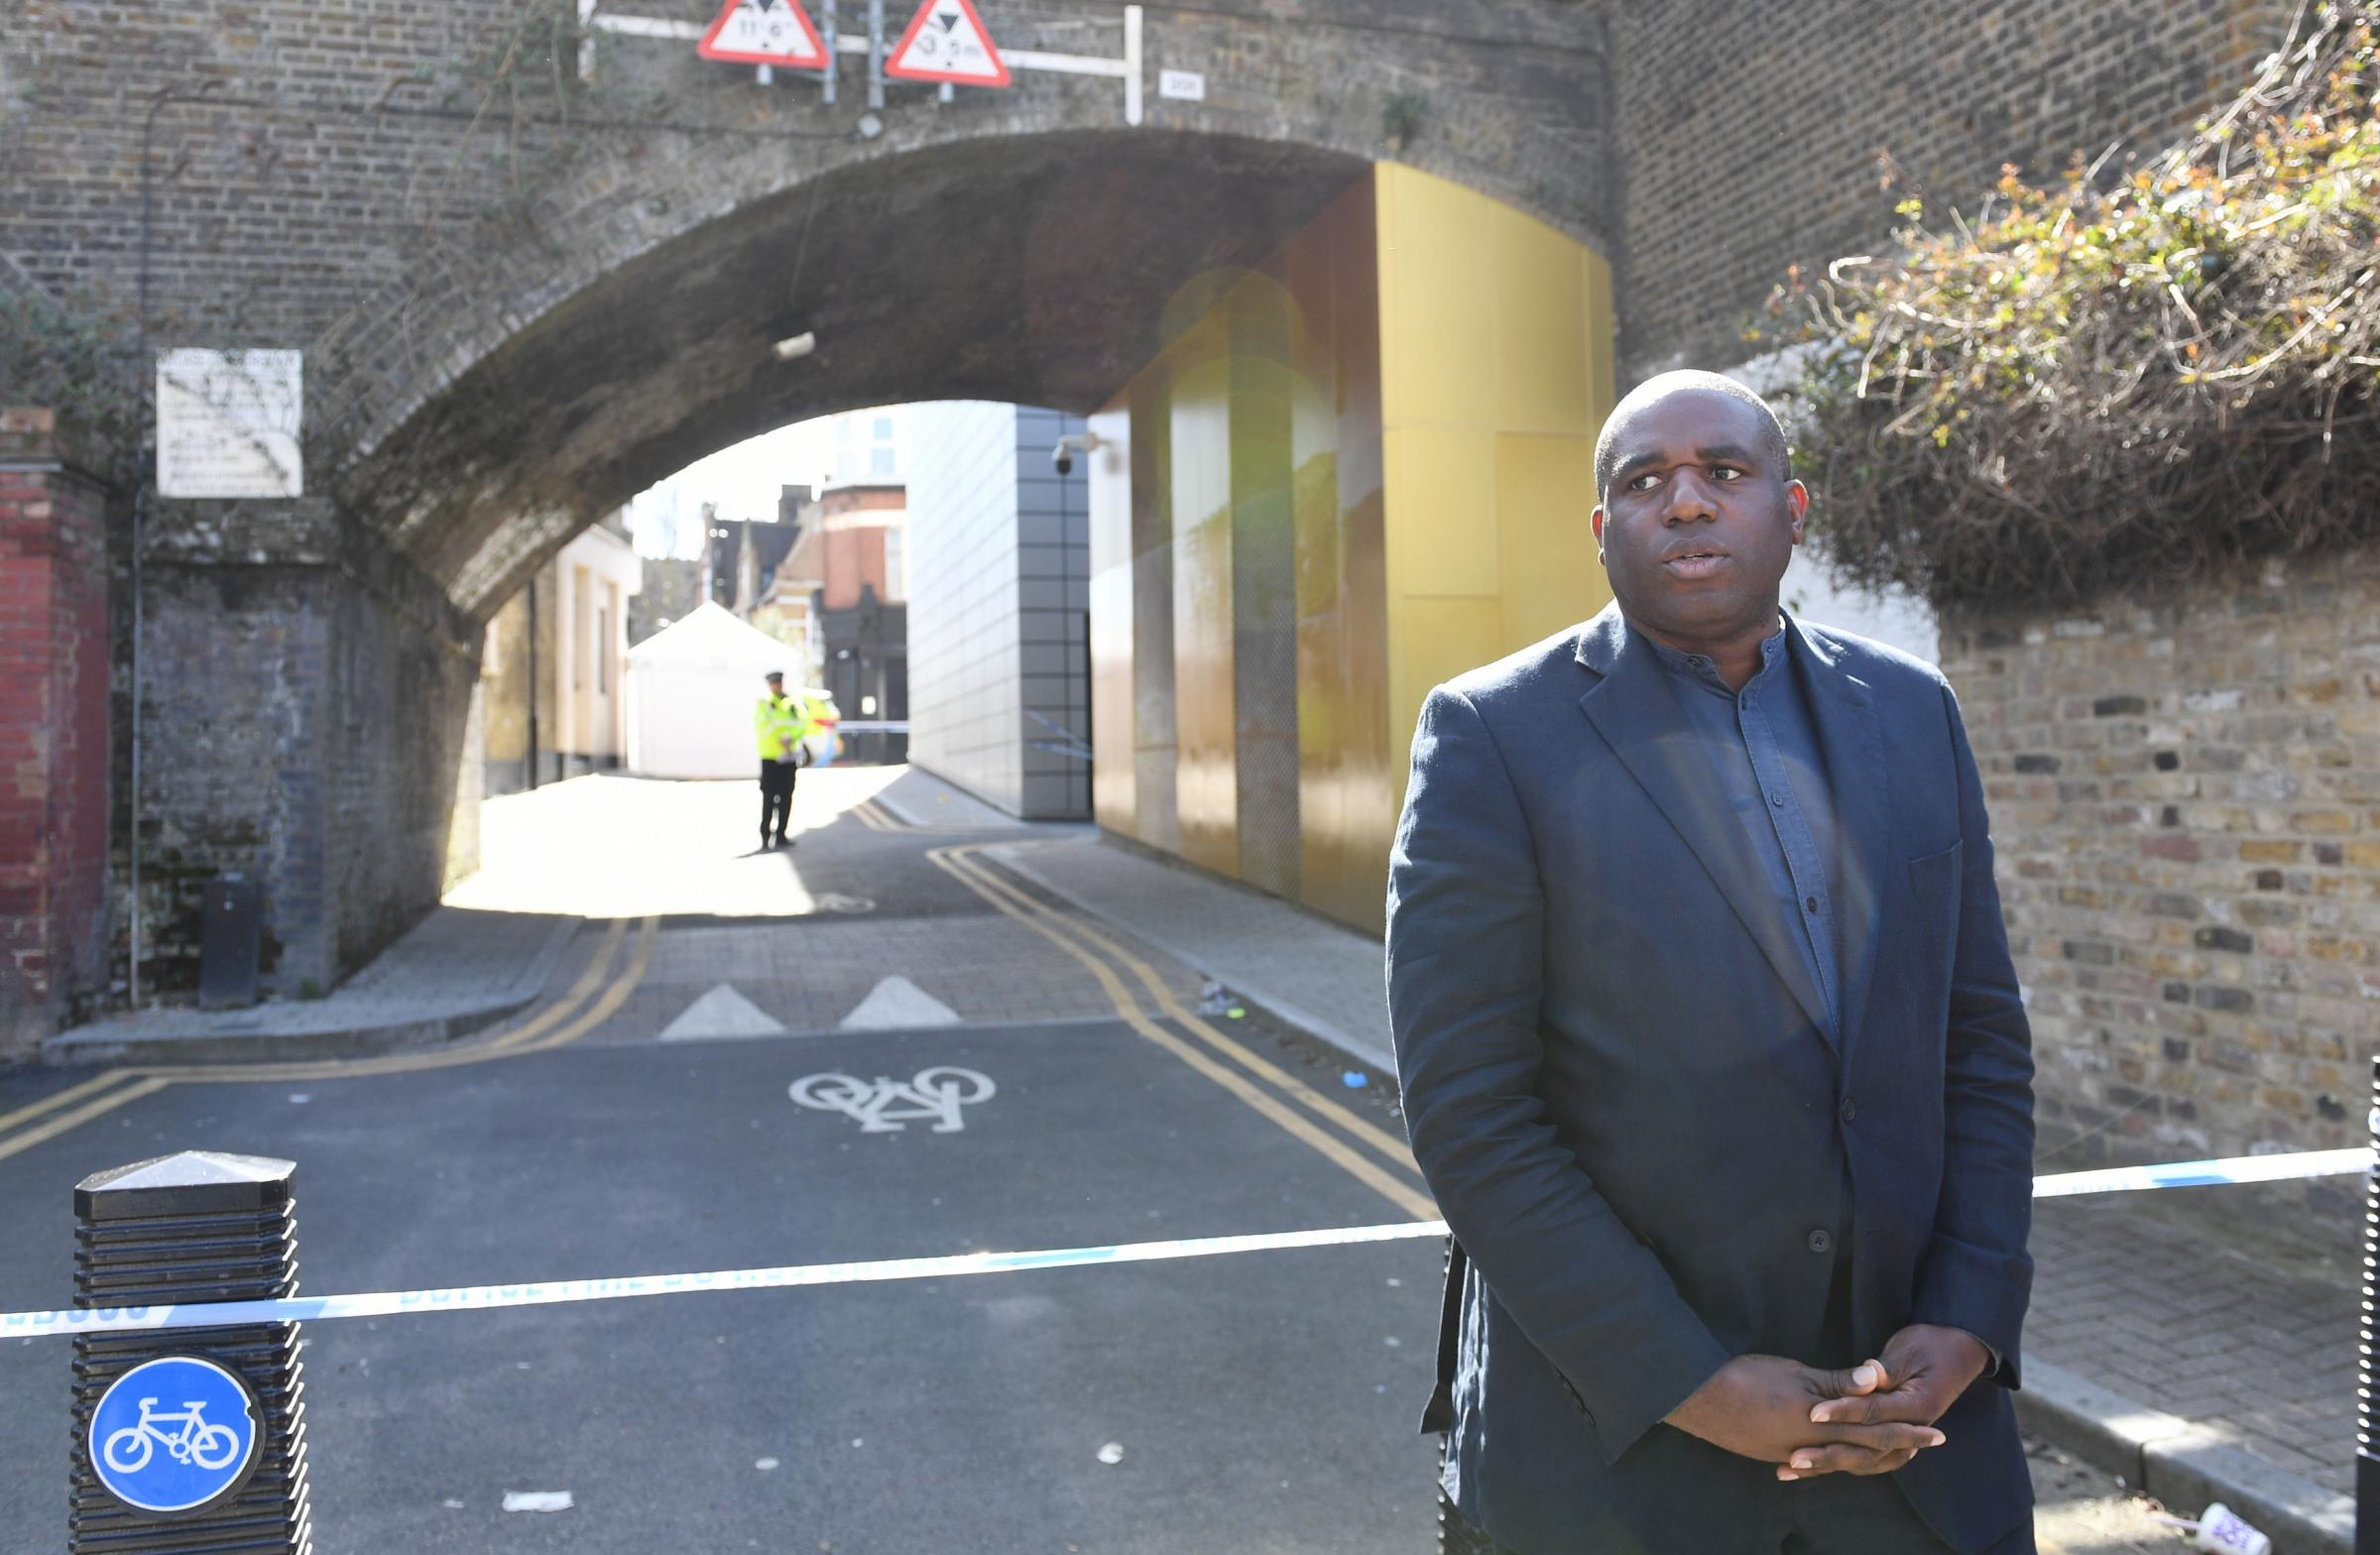 Crime epidemic: Lammy, at scene of another London stabbing, calls for political consensus